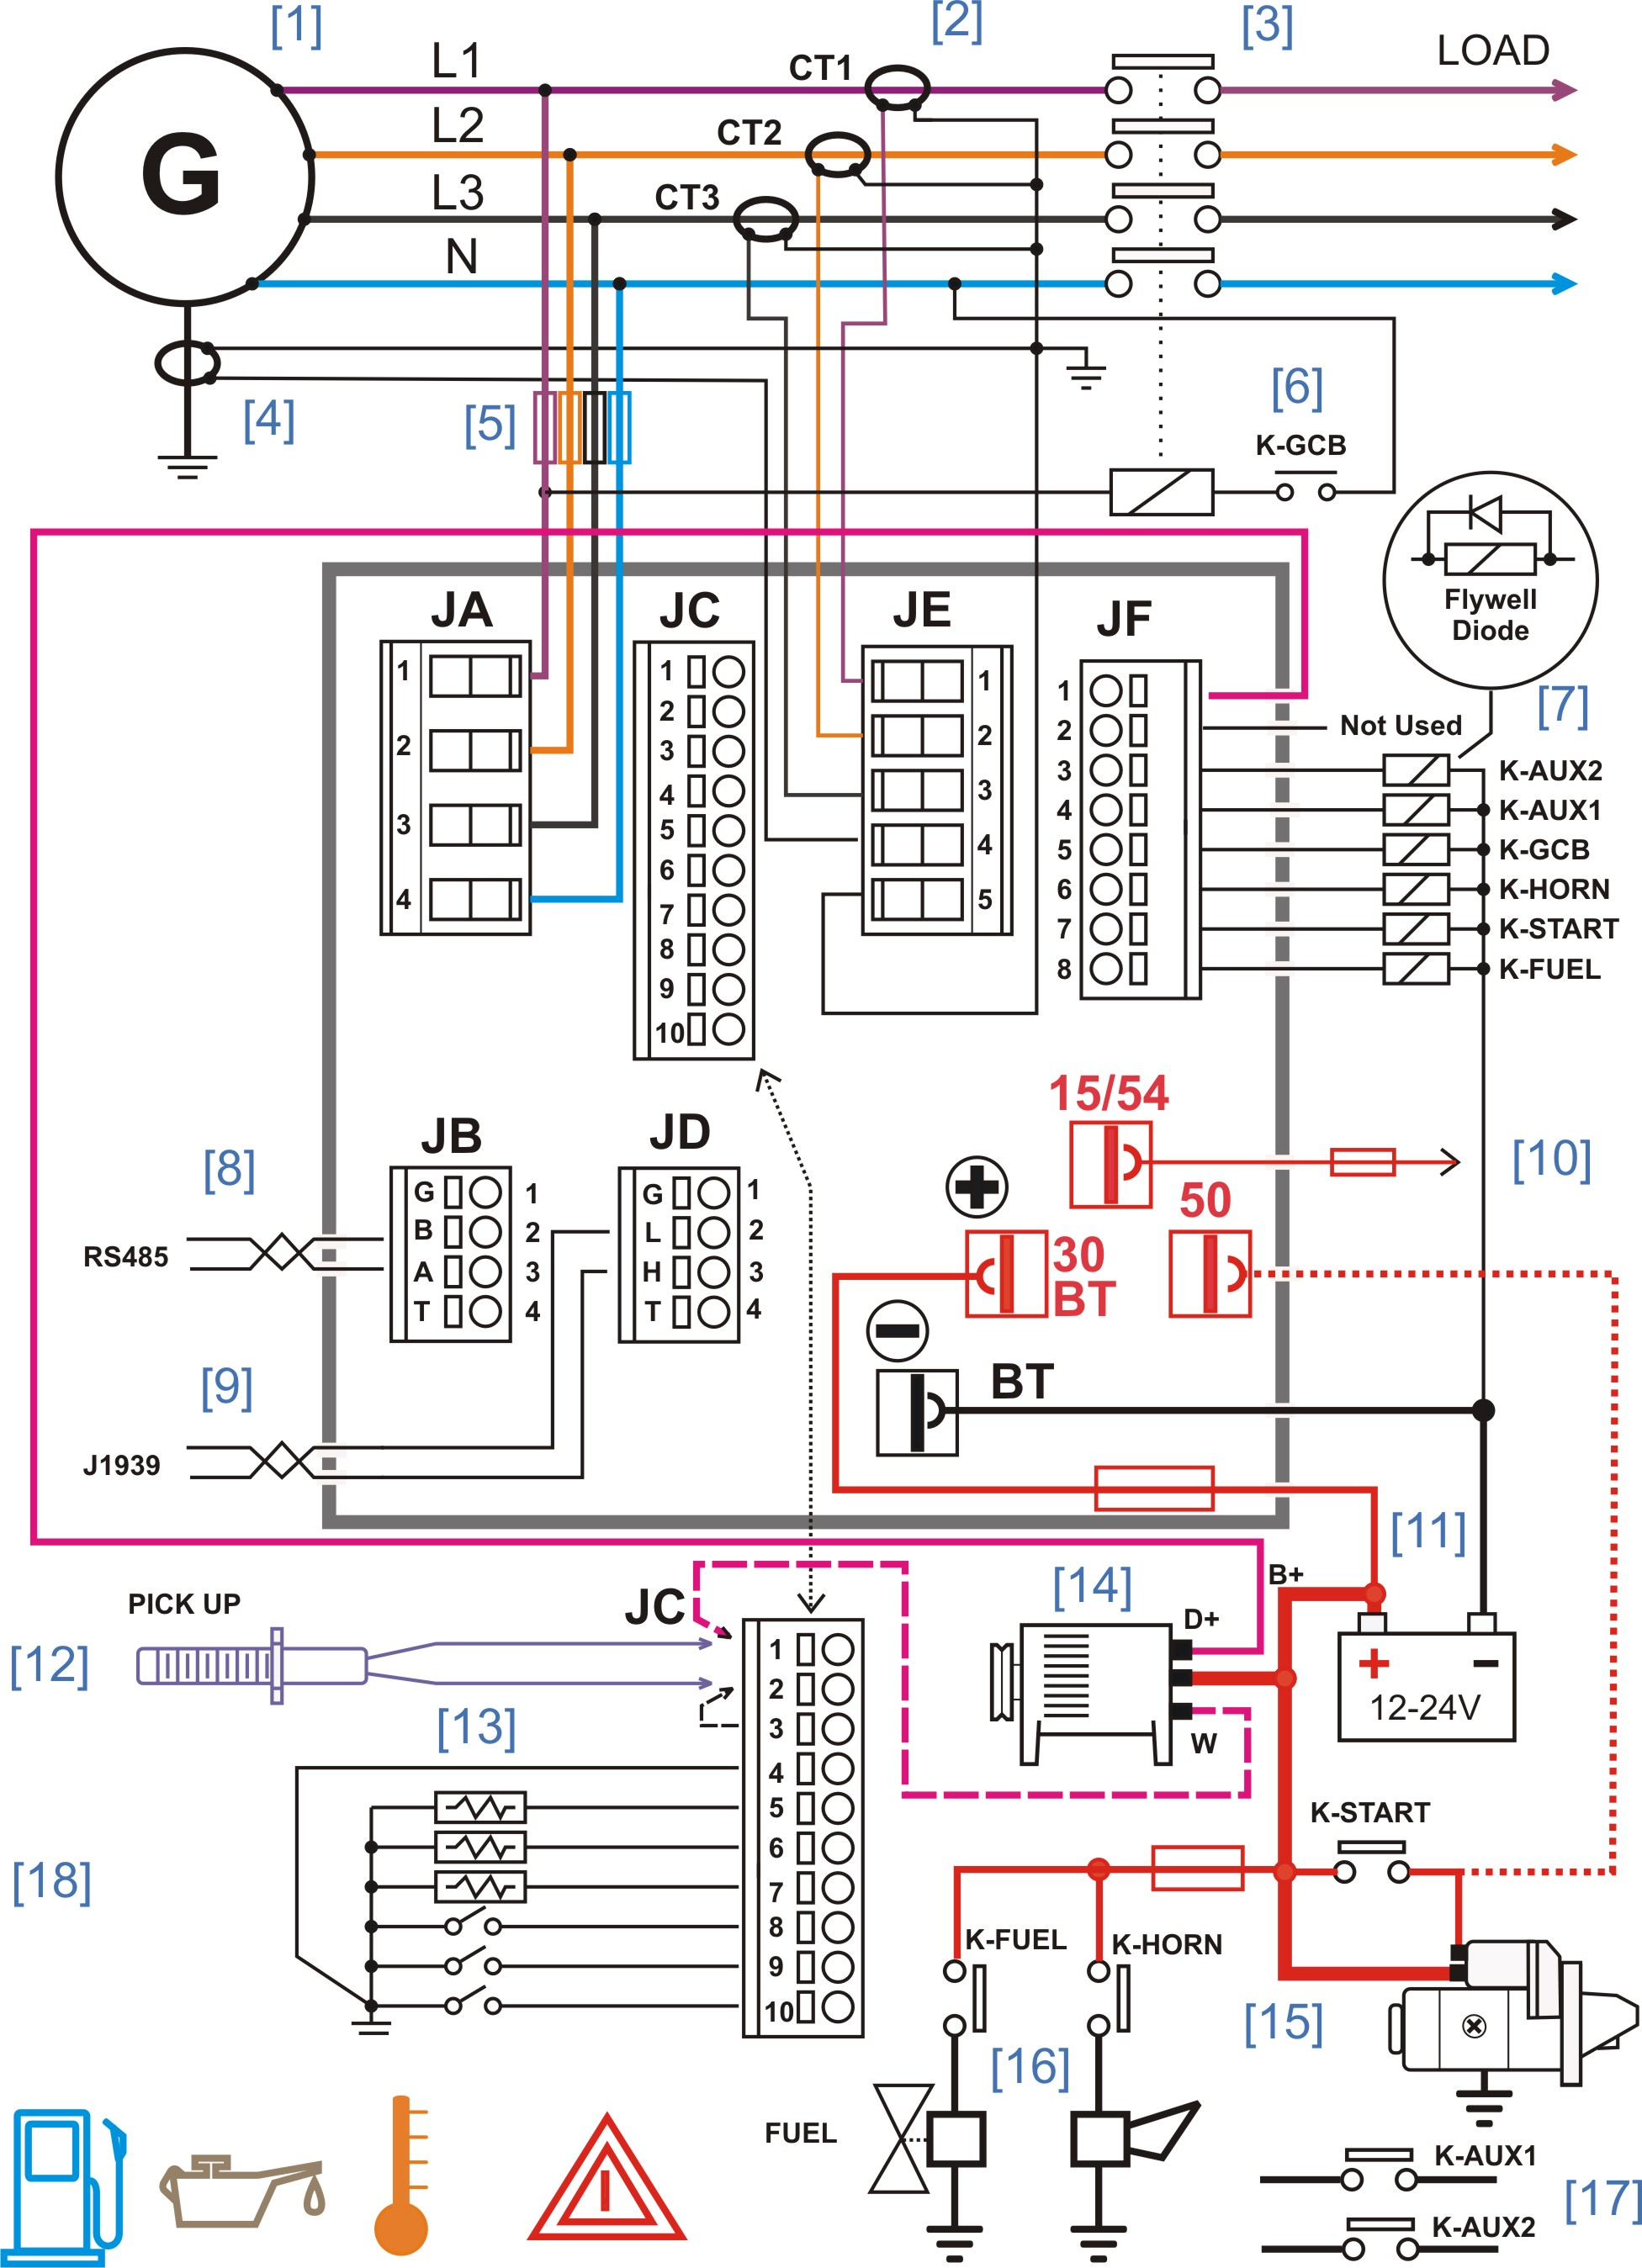 Vfd Control Panel Wiring Diagram